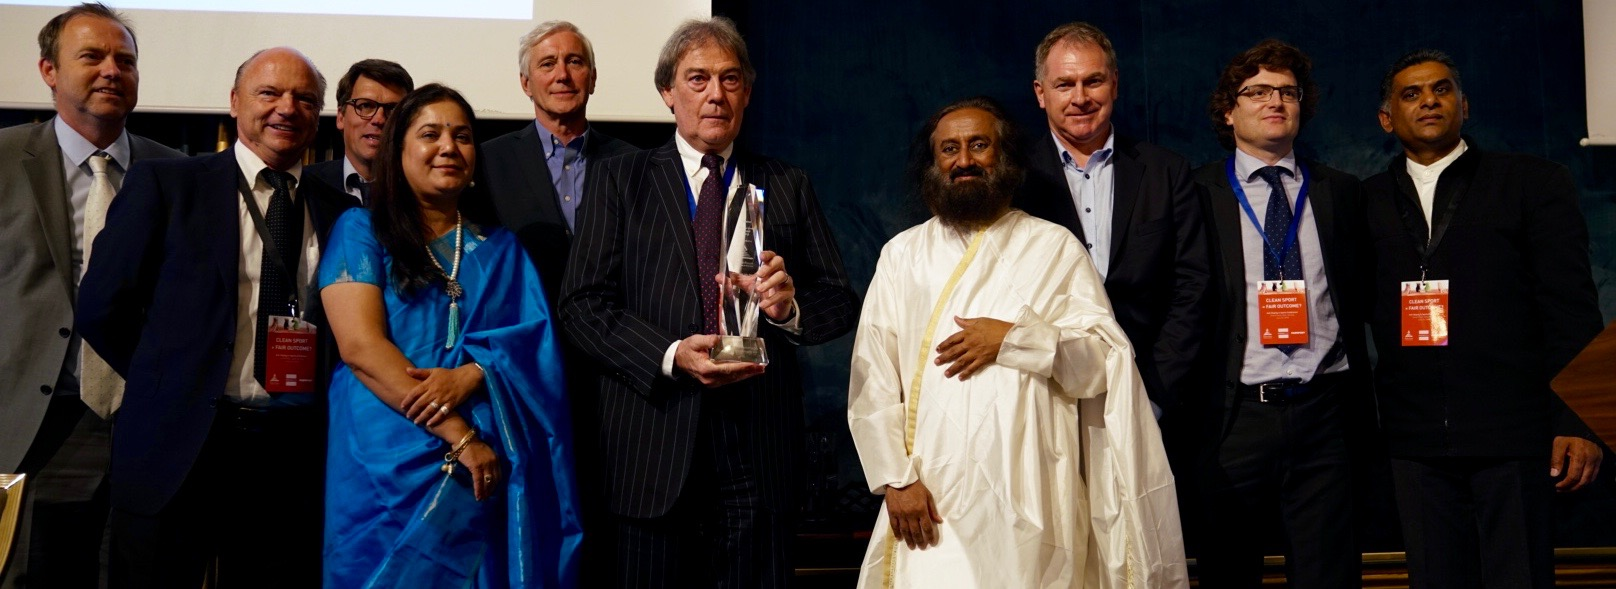 David Howman conferred with Ethics in Sports Award 2018 by WFEB